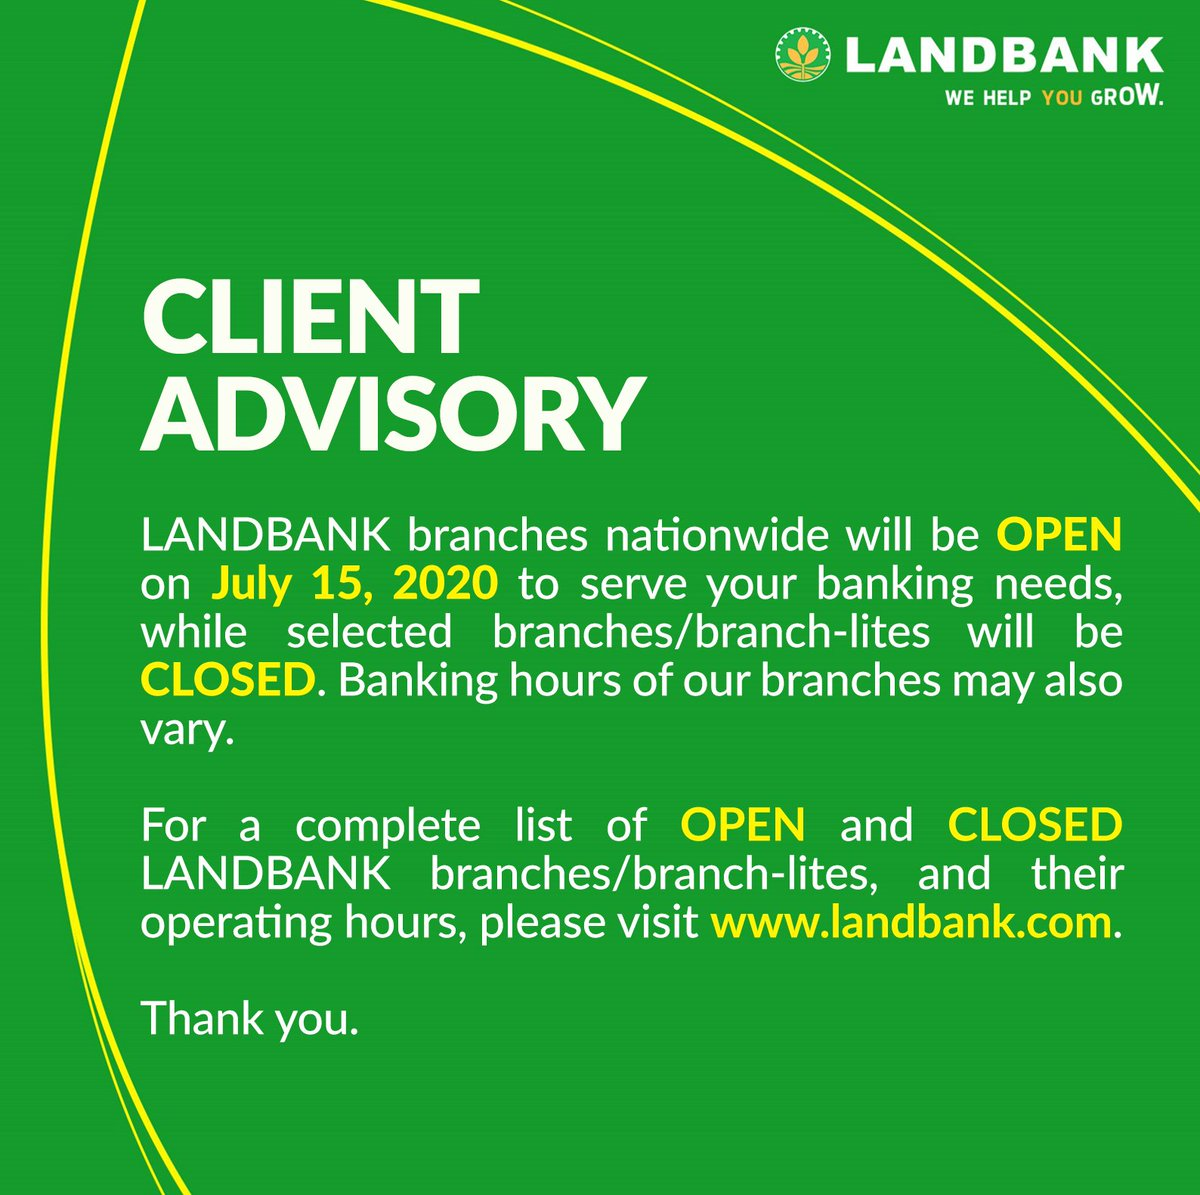 #LANDBANKClientAdvisory  To see the full list of OPEN branches, visit https://t.co/Jsnuexp2FI  To see the full list of CLOSED branches, visit https://t.co/HIfPOwA4SA https://t.co/NhPjKMUI03